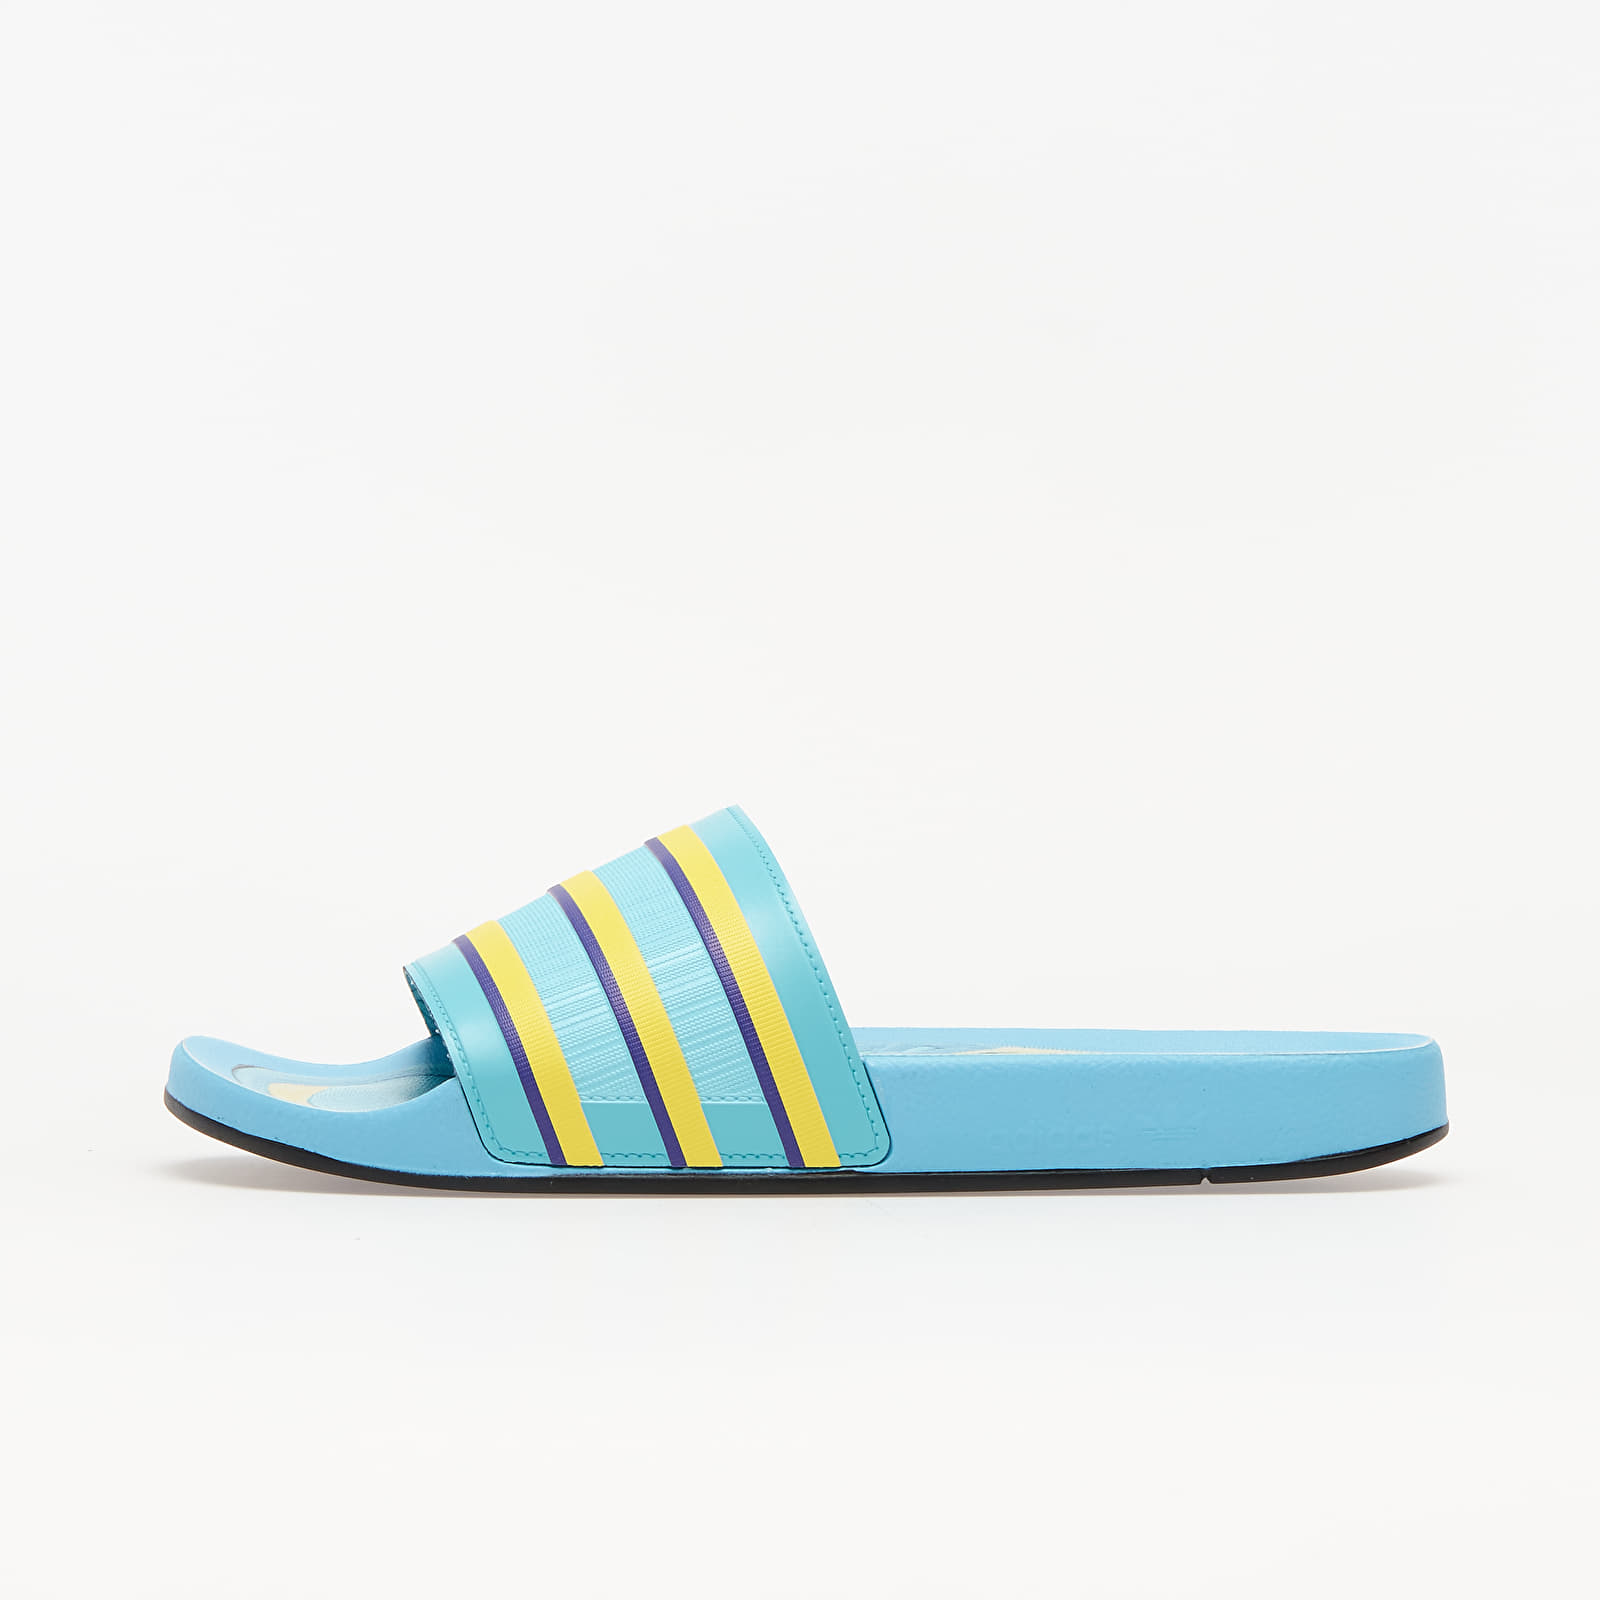 adidas Adilette Premium Light Aqua/ Bright Yellow/ Purple EUR 39